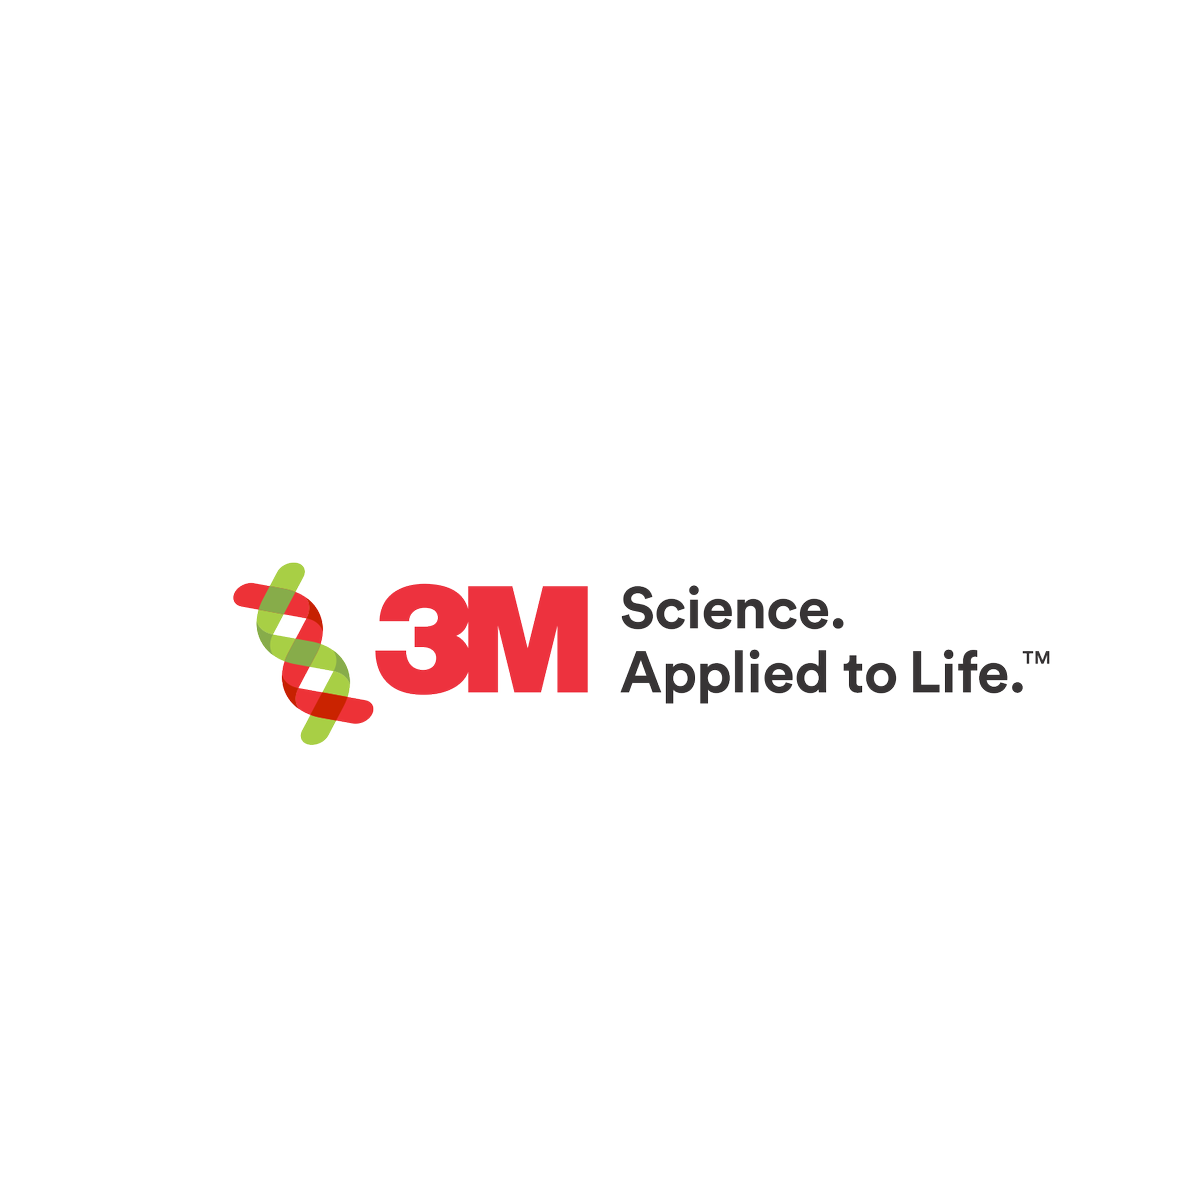 brand 3m science png logo #5137